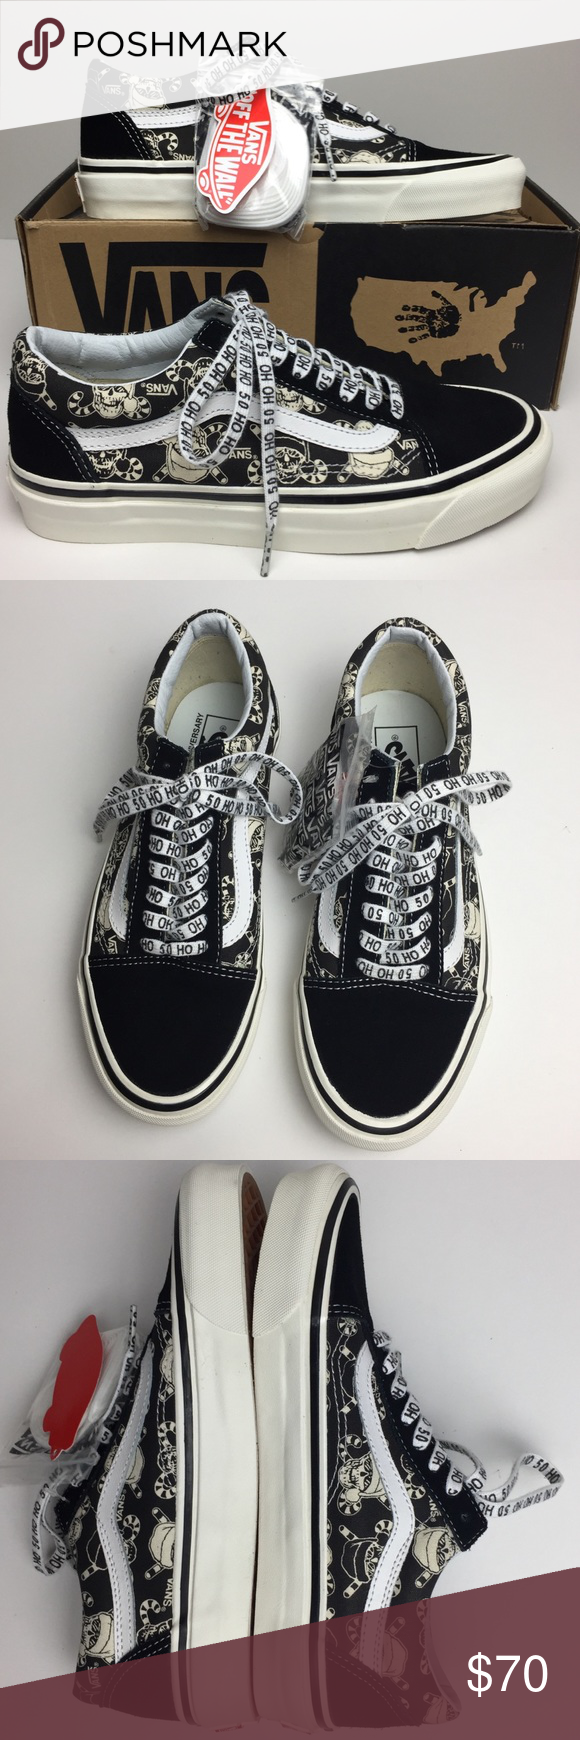 8dac85a0fa Vans Old Skool 36 Reissue 50th STV Pirate Santa 50th Anniversary Limited  Edition. Awesome Pirate Santa Skulls black and white print. Low top skate  shoes.